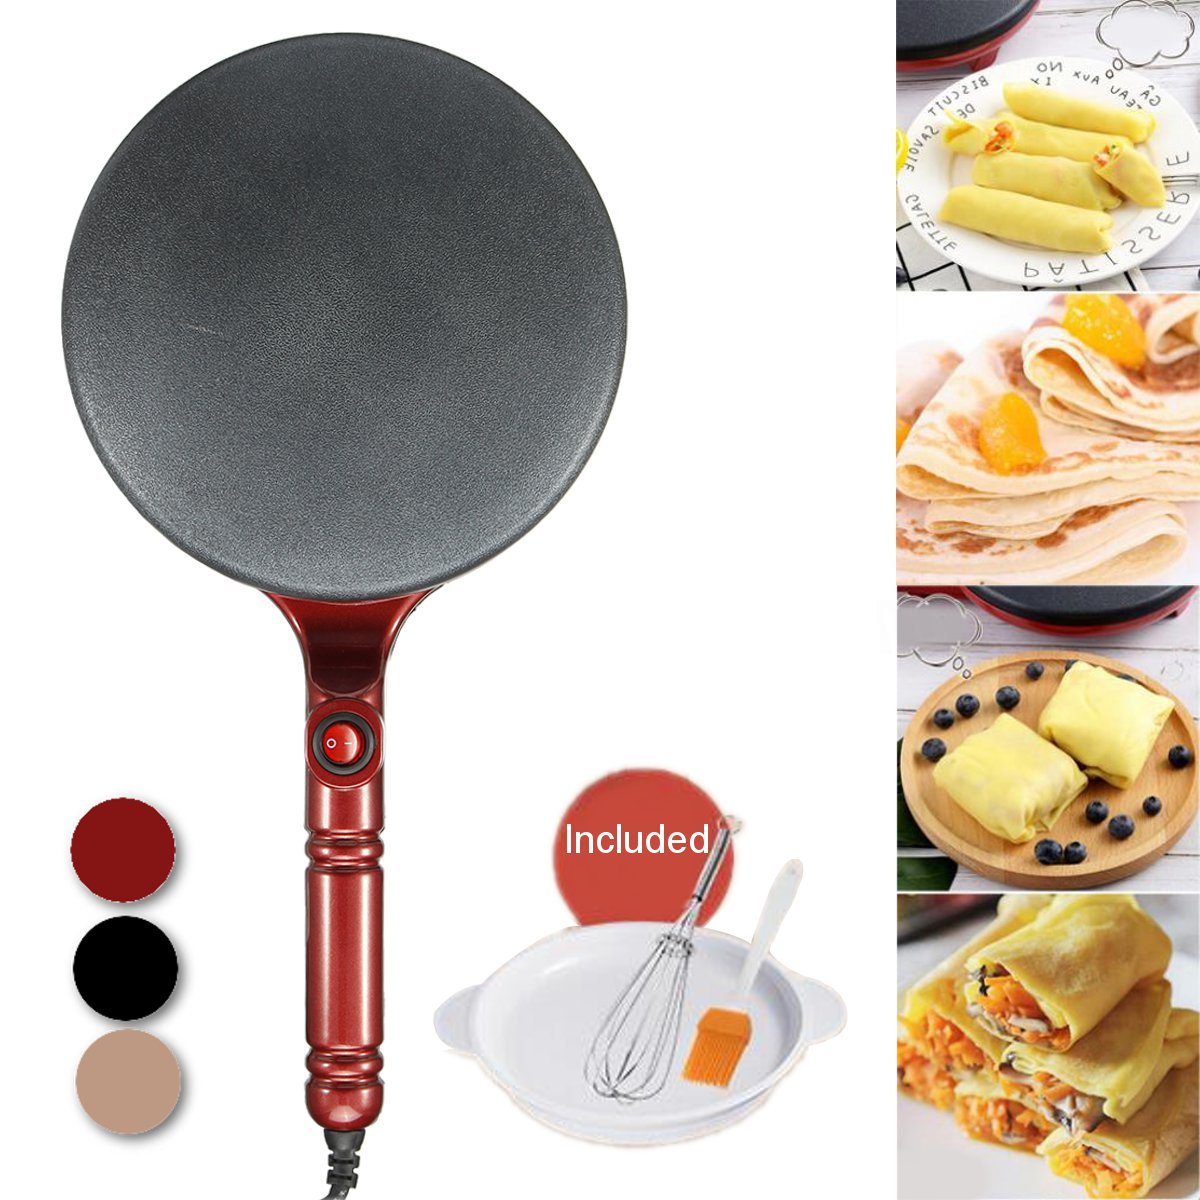 21cm <font><b>Electric</b></font> Crepe Maker Non Stick <font><b>Baking</b></font> Pancake <font><b>Pan</b></font> Frying Griddle Machine Tray Beater Set Kitchen Cooking Tools 220V 700W image